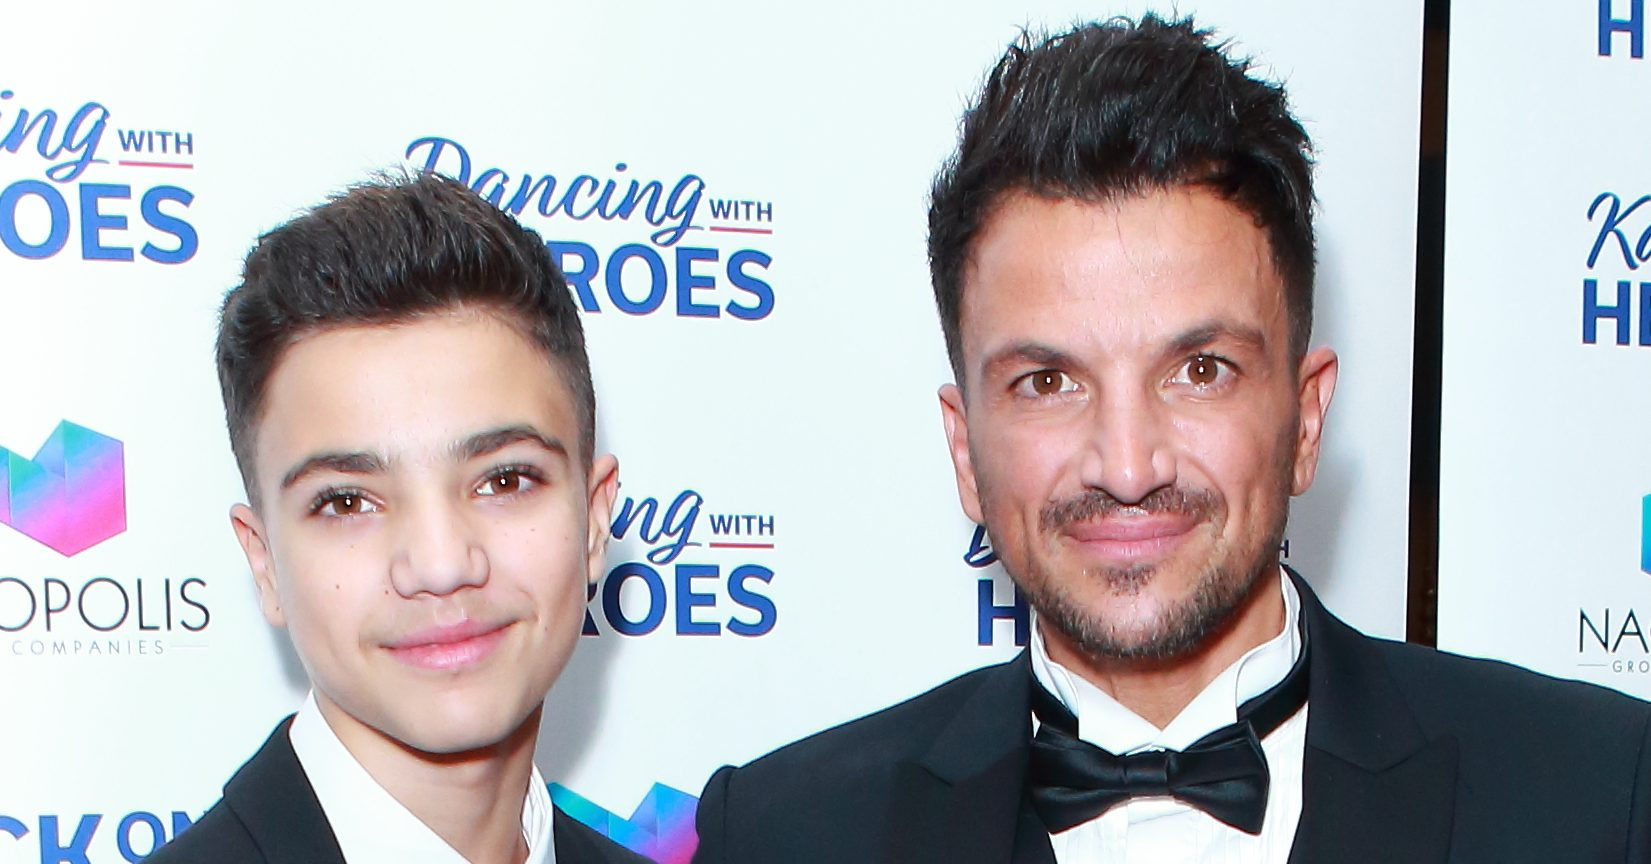 Peter Andre gives son Junior a lockdown haircut as the singer responds to fans who urge him to shave his